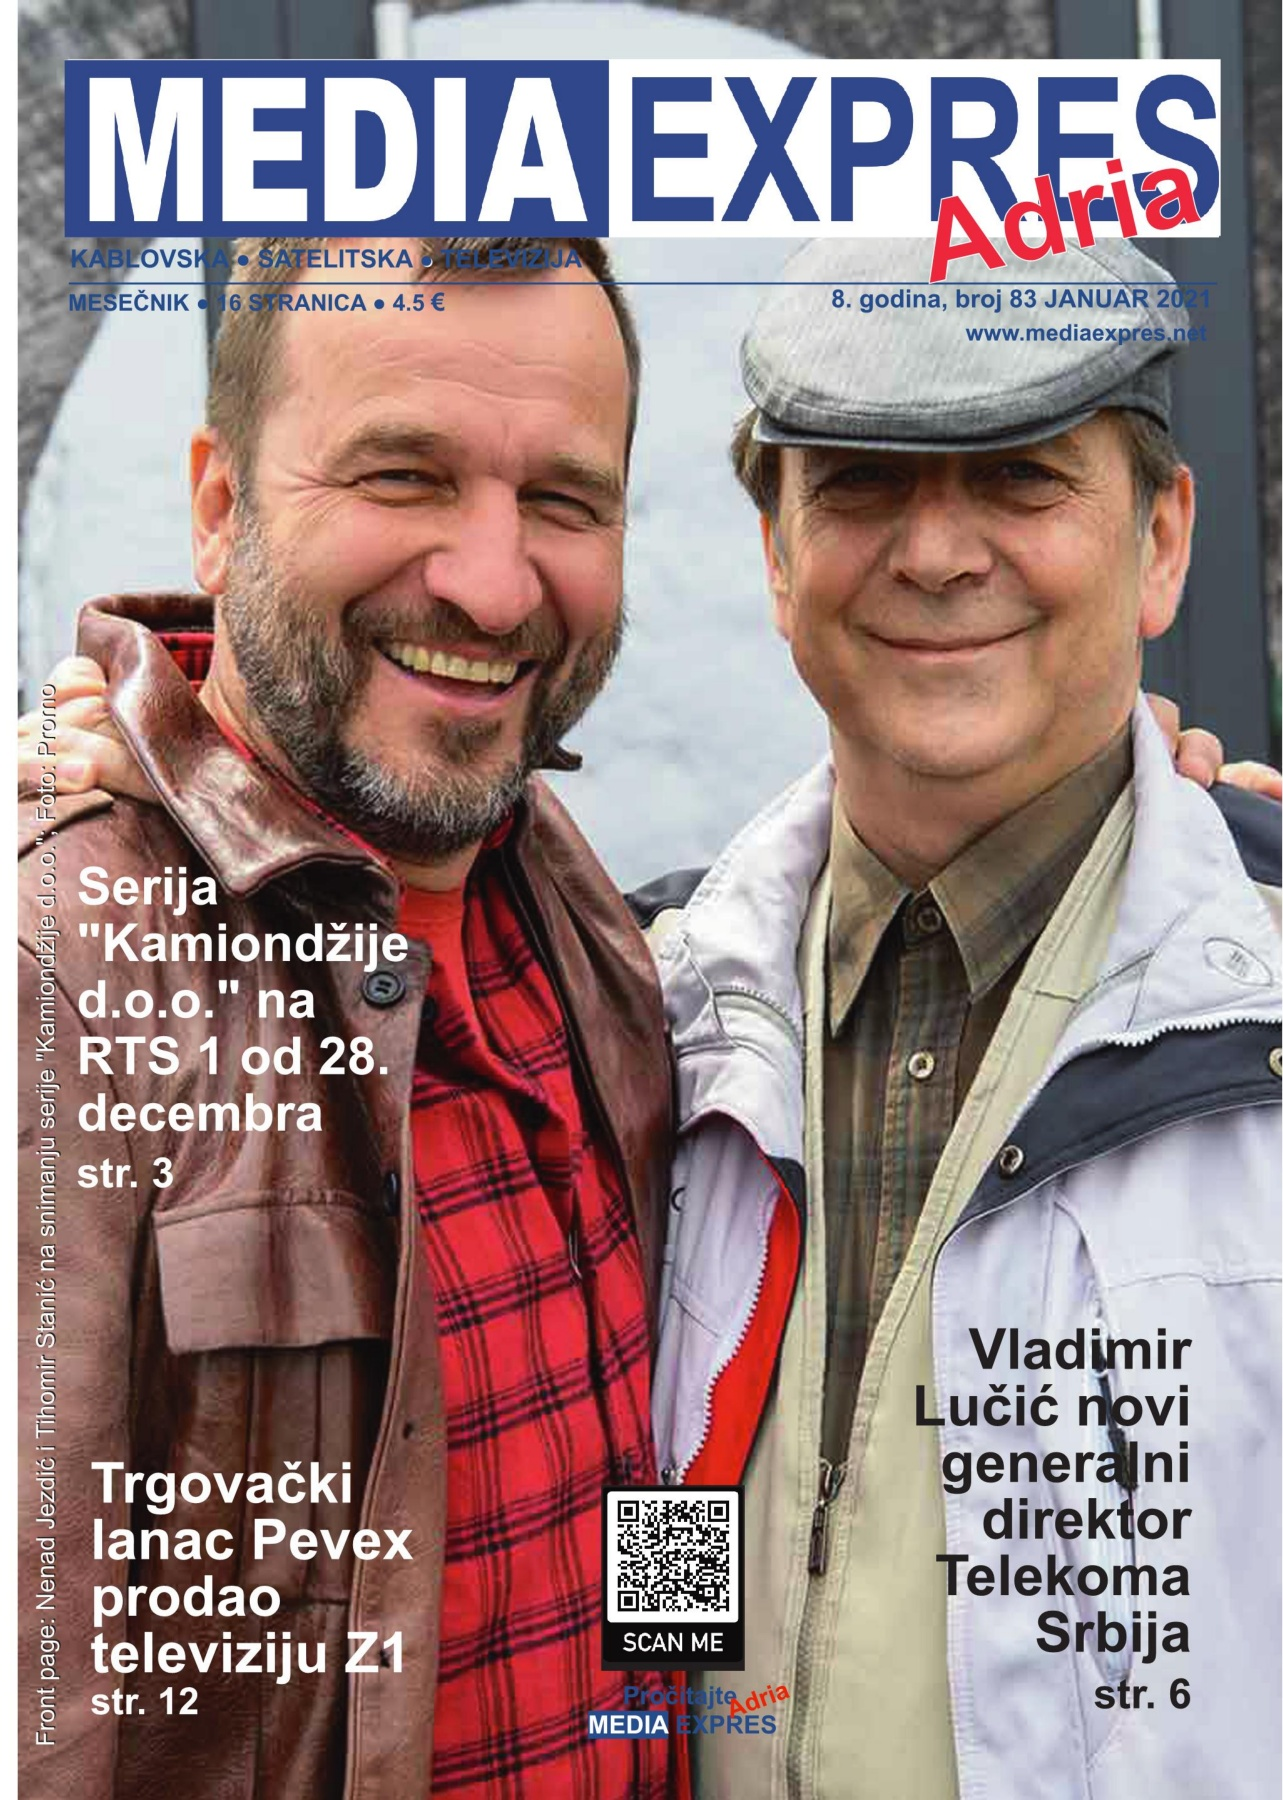 Media Expres Adria No. 1 JANUAR 2021 1st Cover